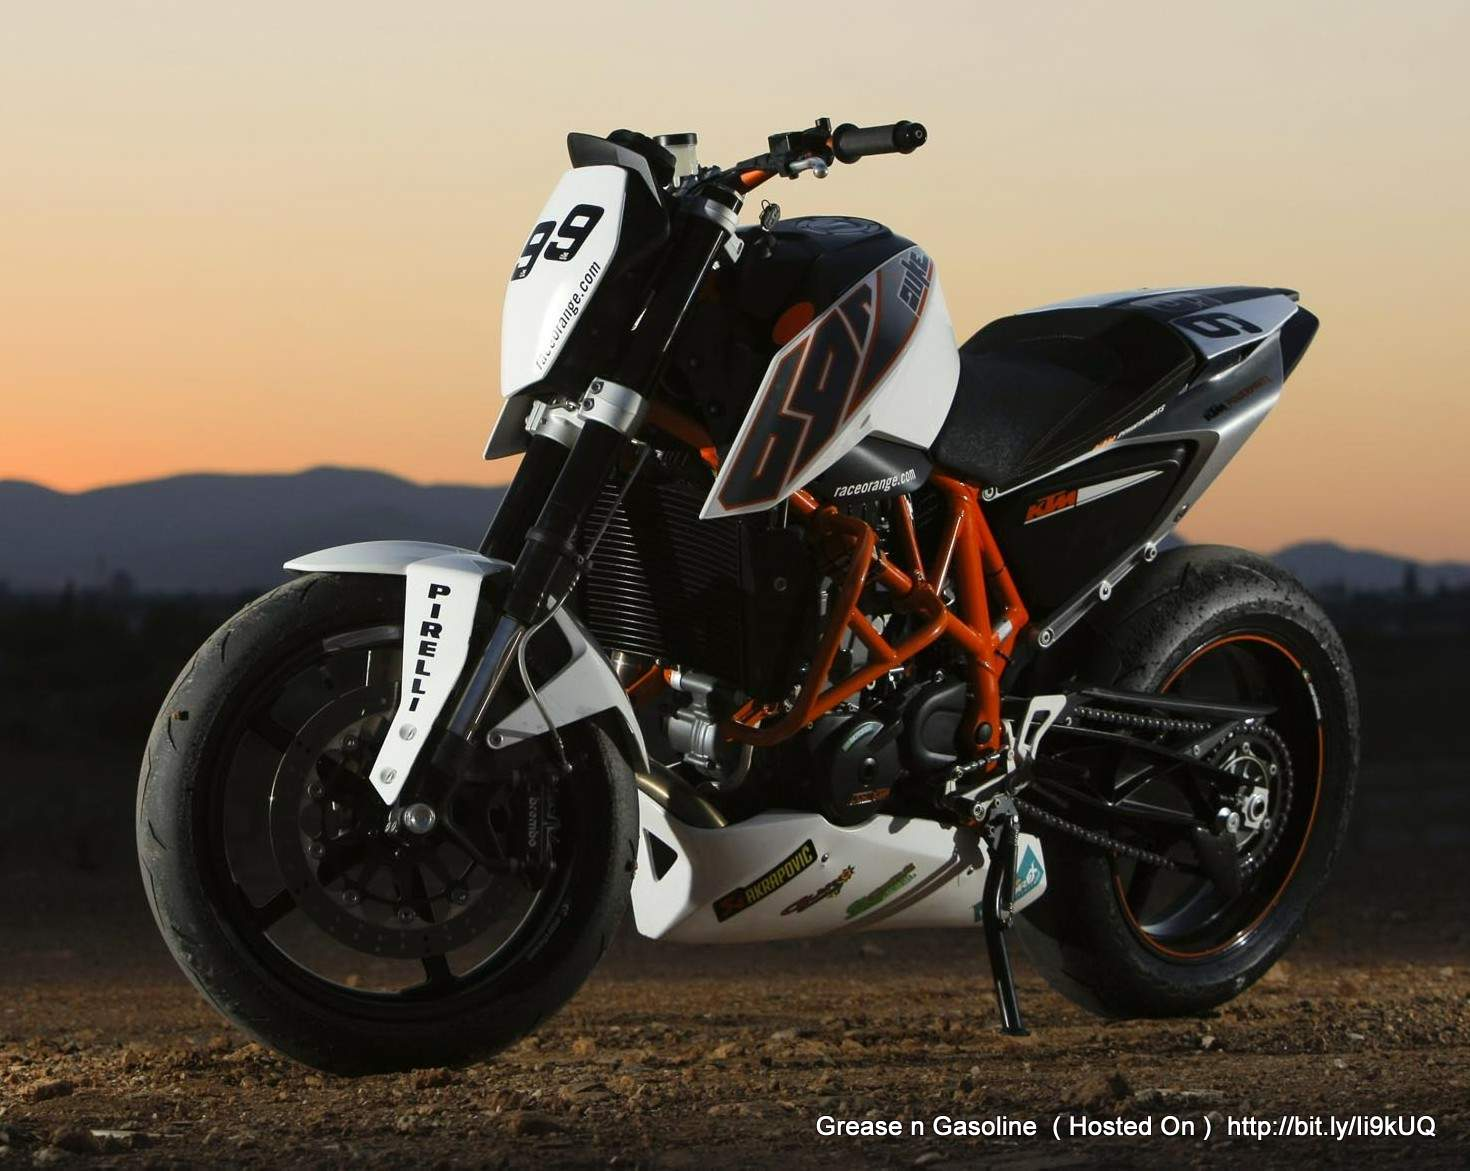 ktm 690 duke track grease n gasoline. Black Bedroom Furniture Sets. Home Design Ideas